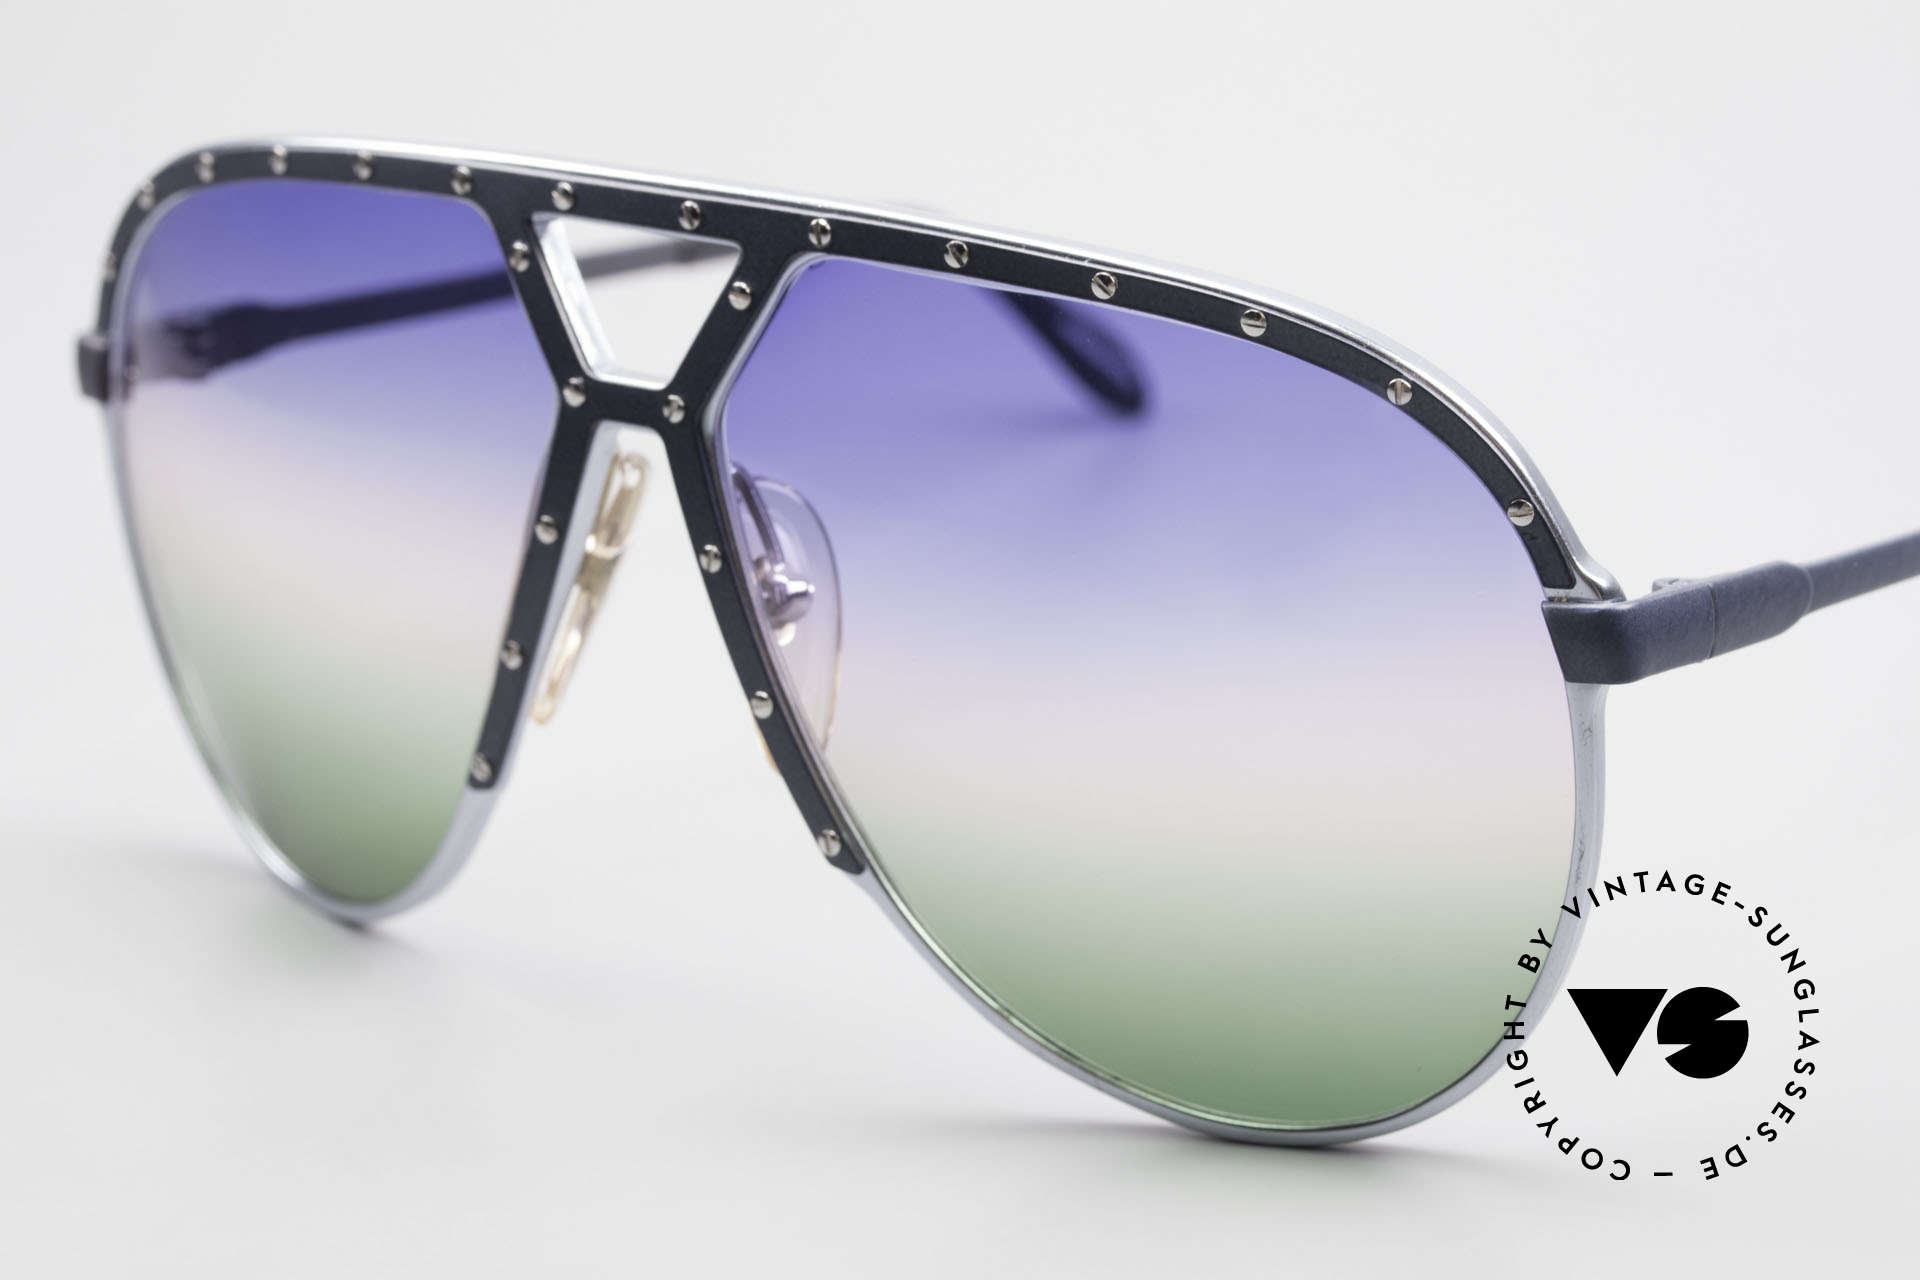 Alpina M1 Customized 80's One of a Kind, with fancy, customized tricolor-gradient sun lenses, Made for Men